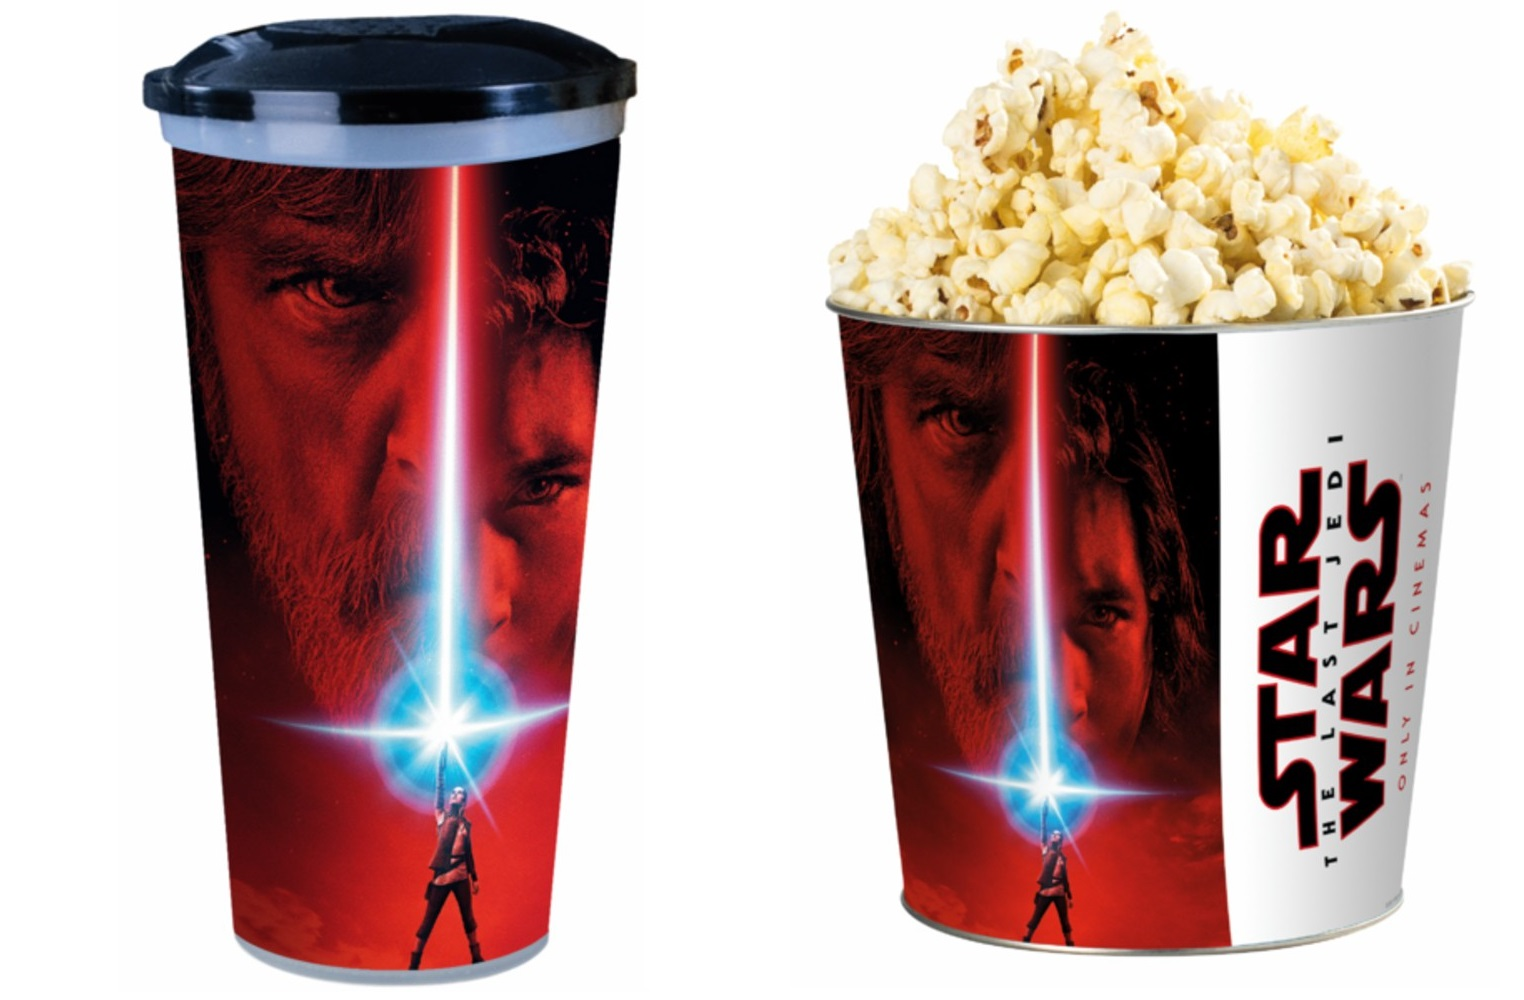 TLJ cups and toppers